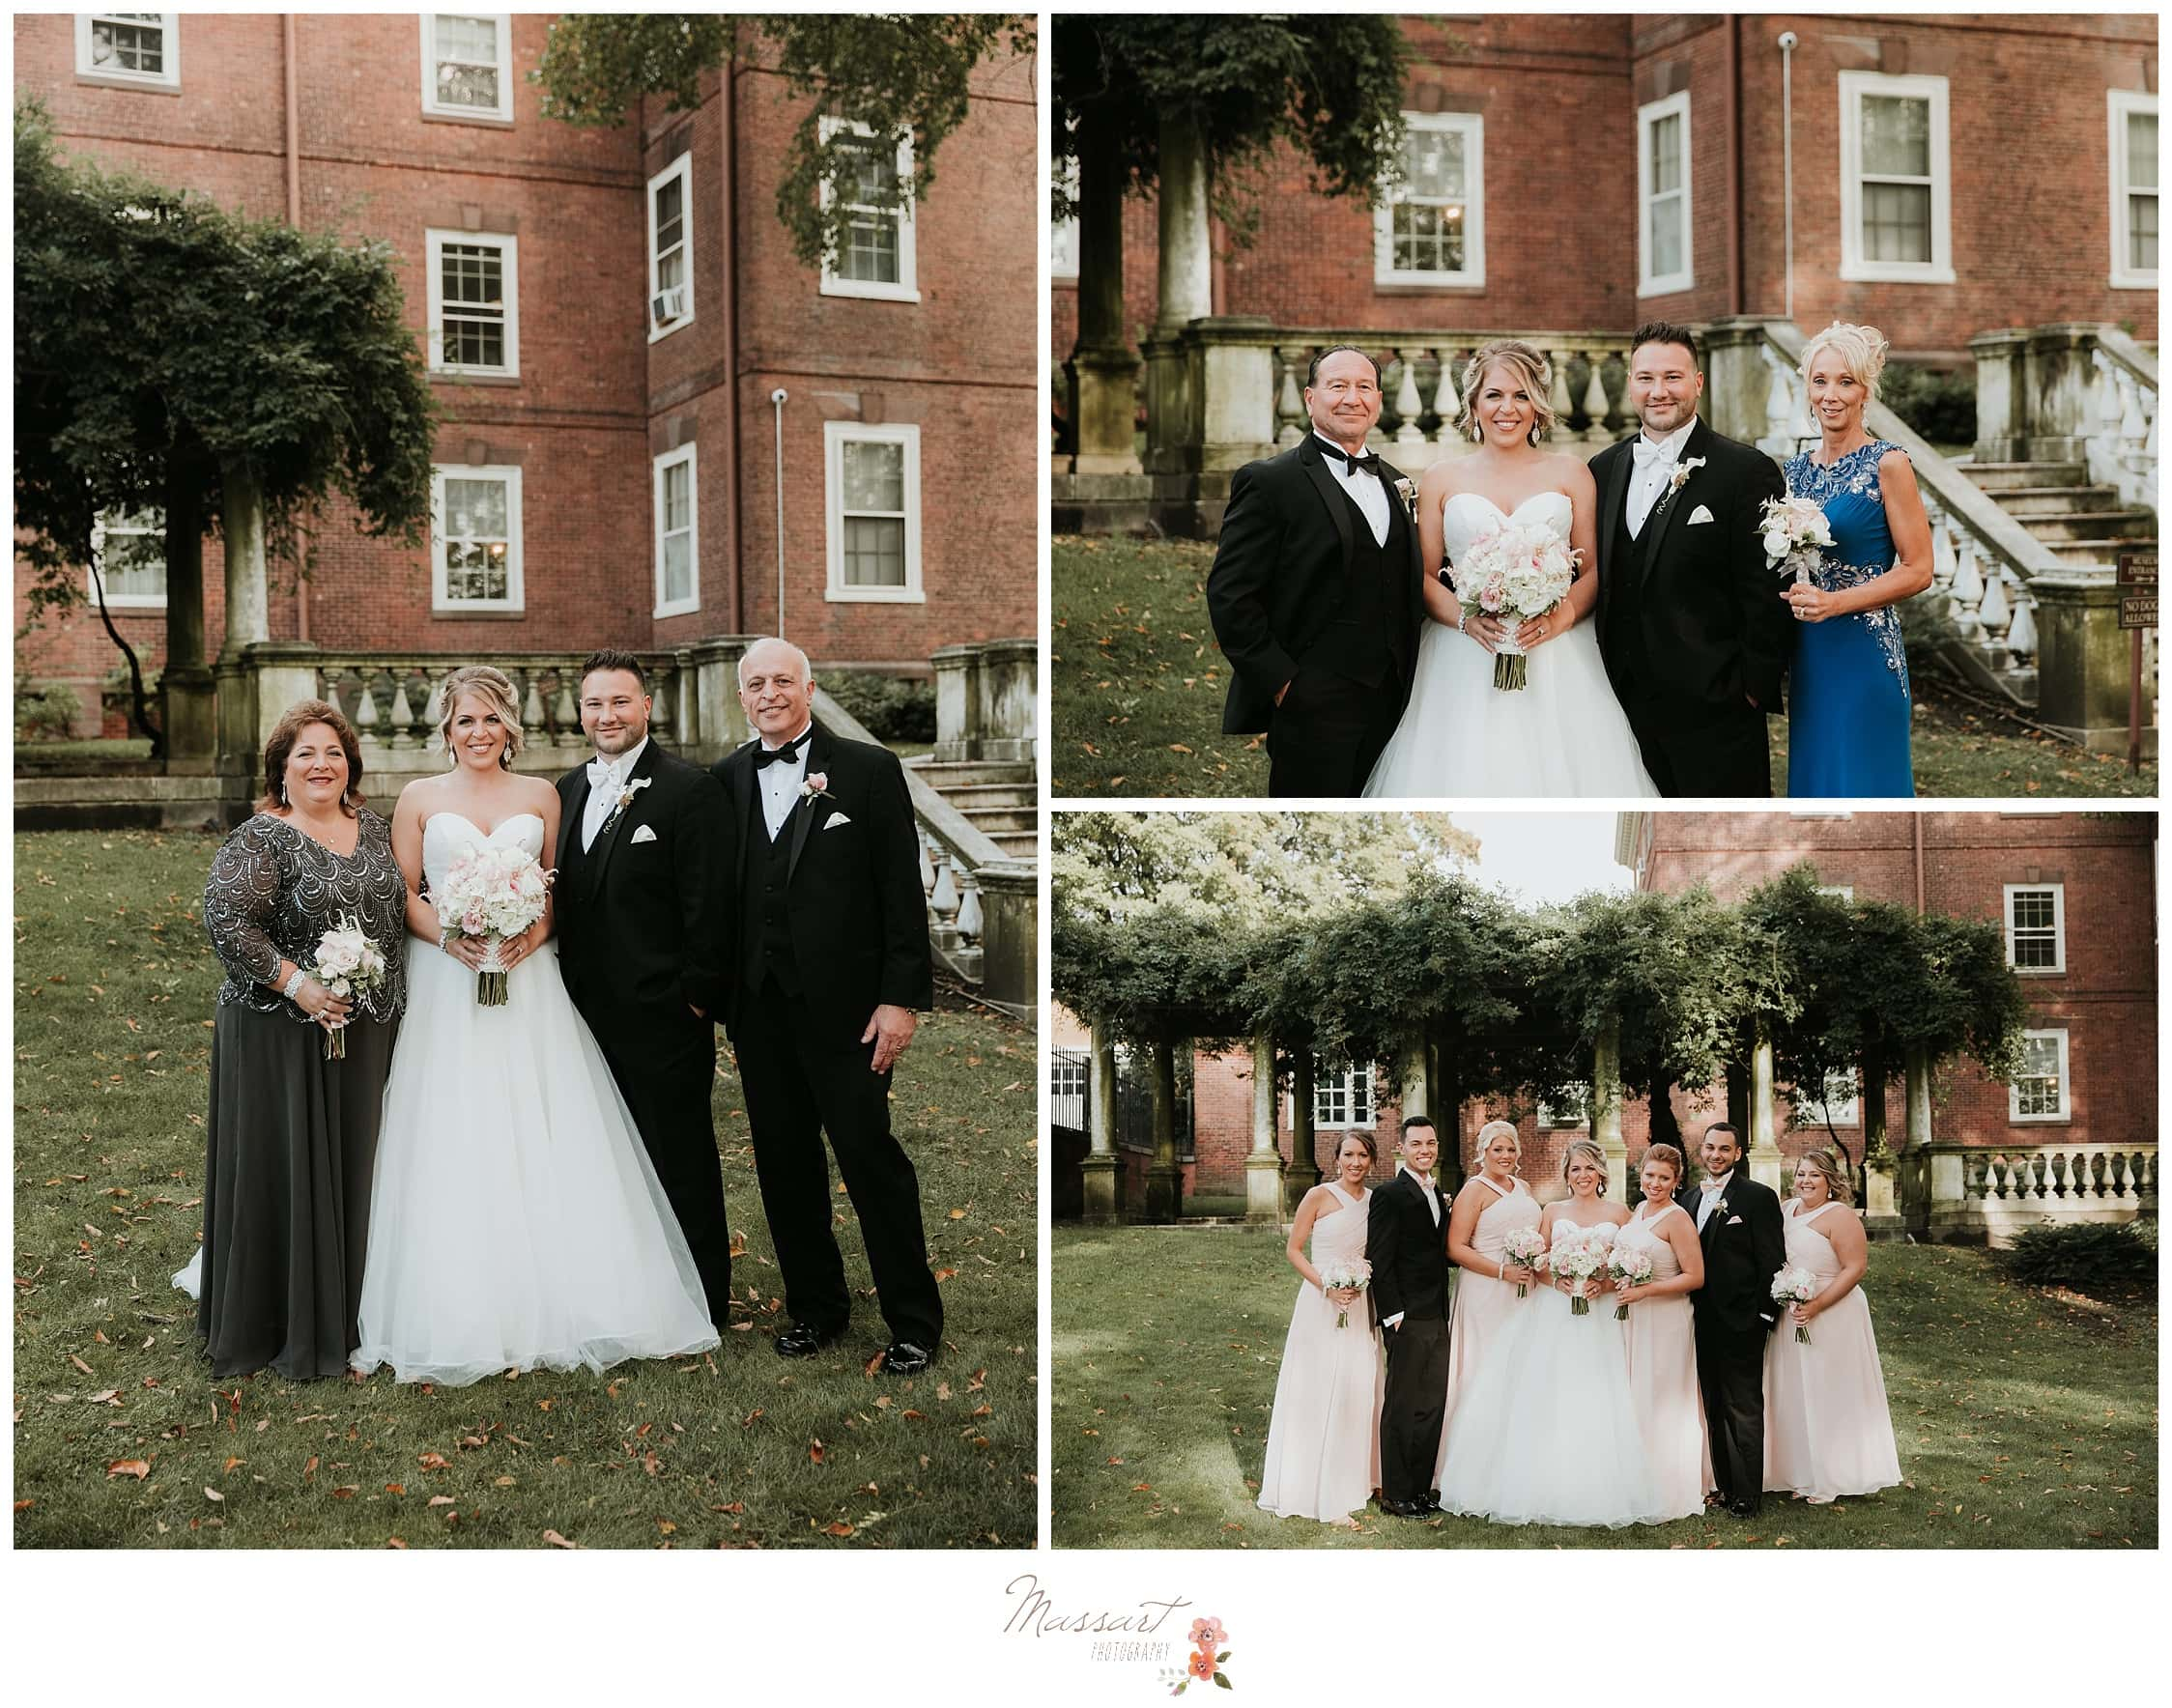 Bride and groom take their formal portraits after wedding ceremony photographed by Massart Photography Rhode Island